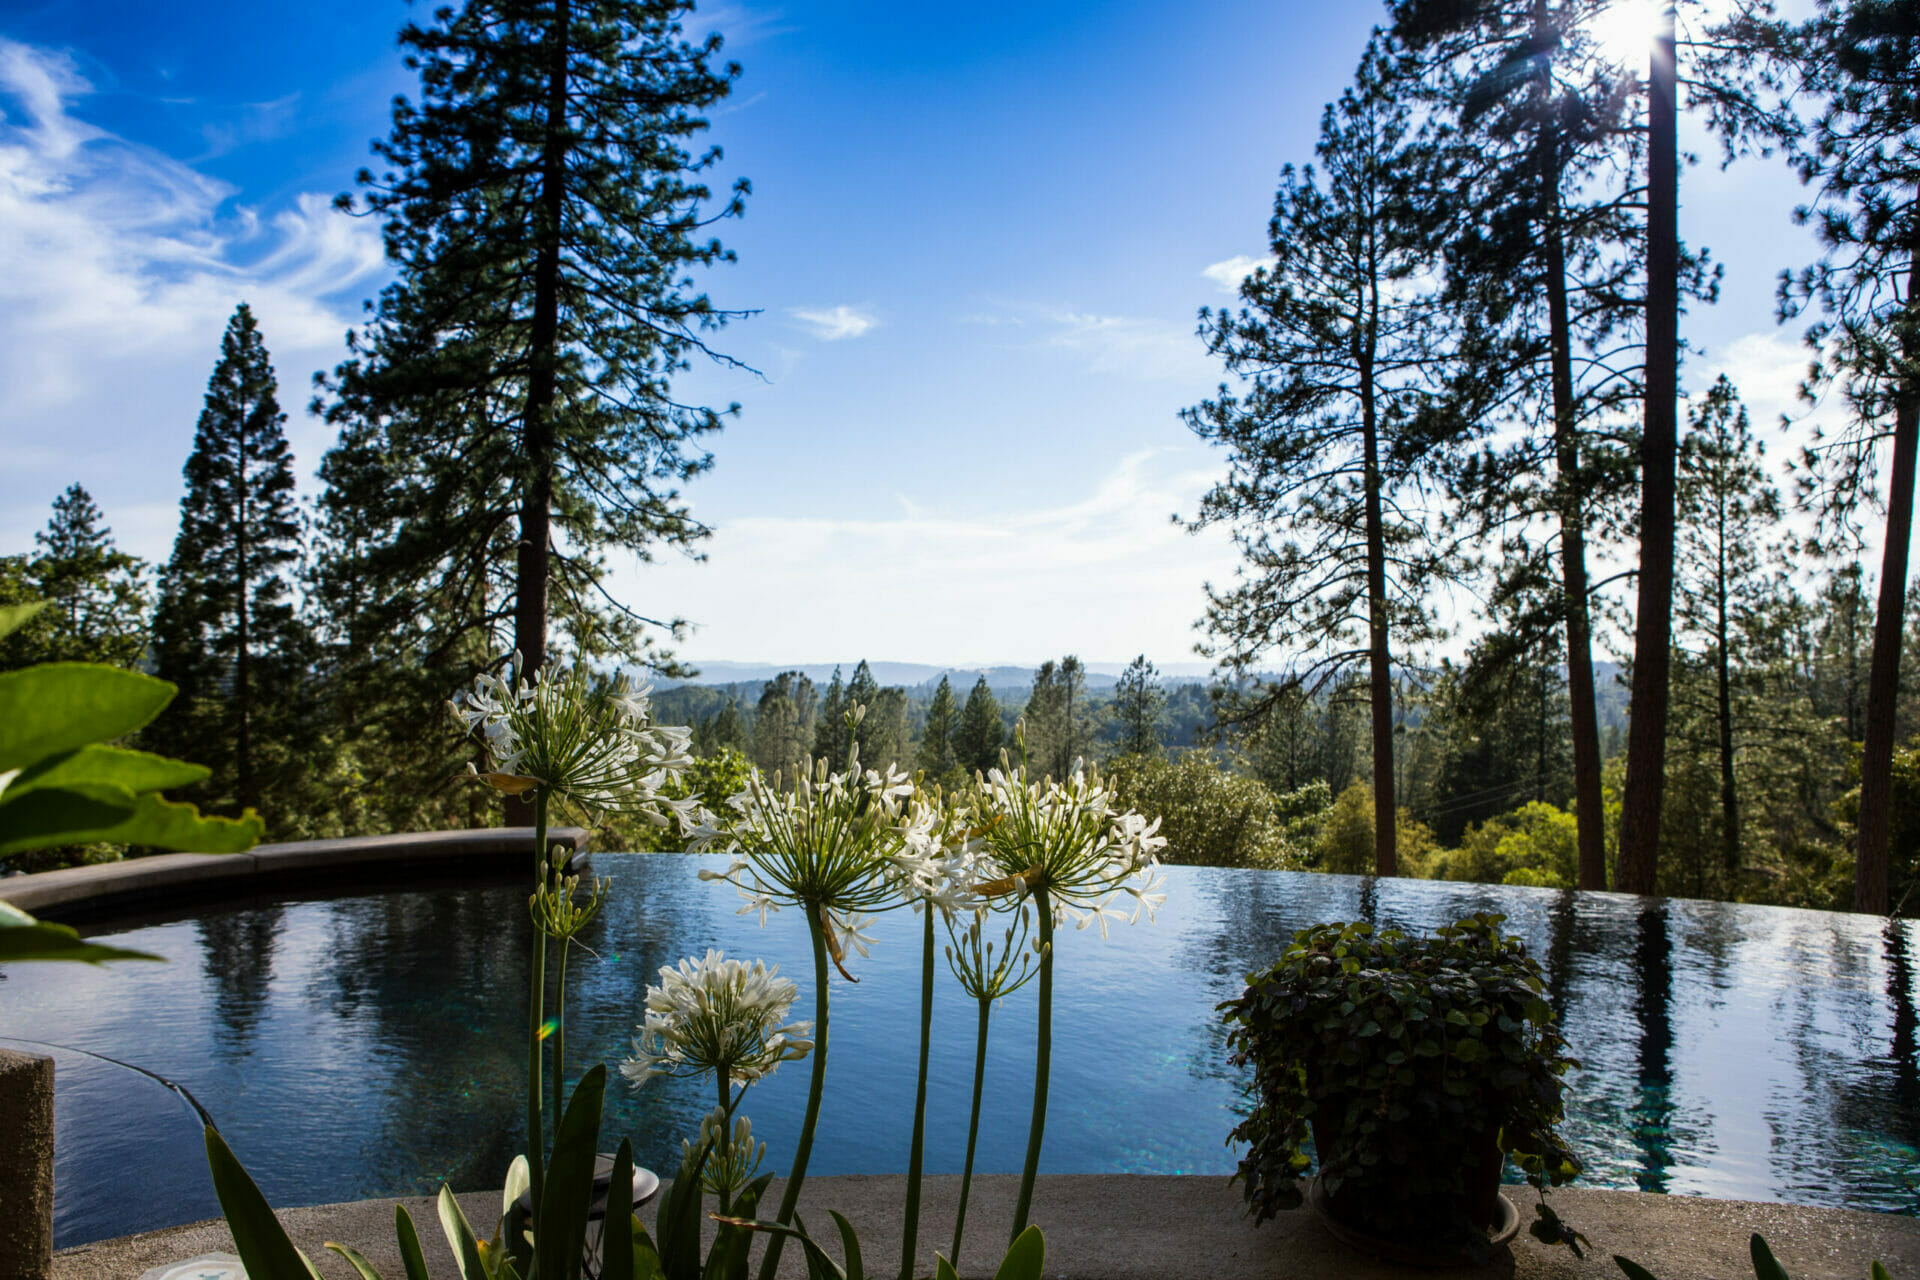 Reverie retreat pool view with the forest